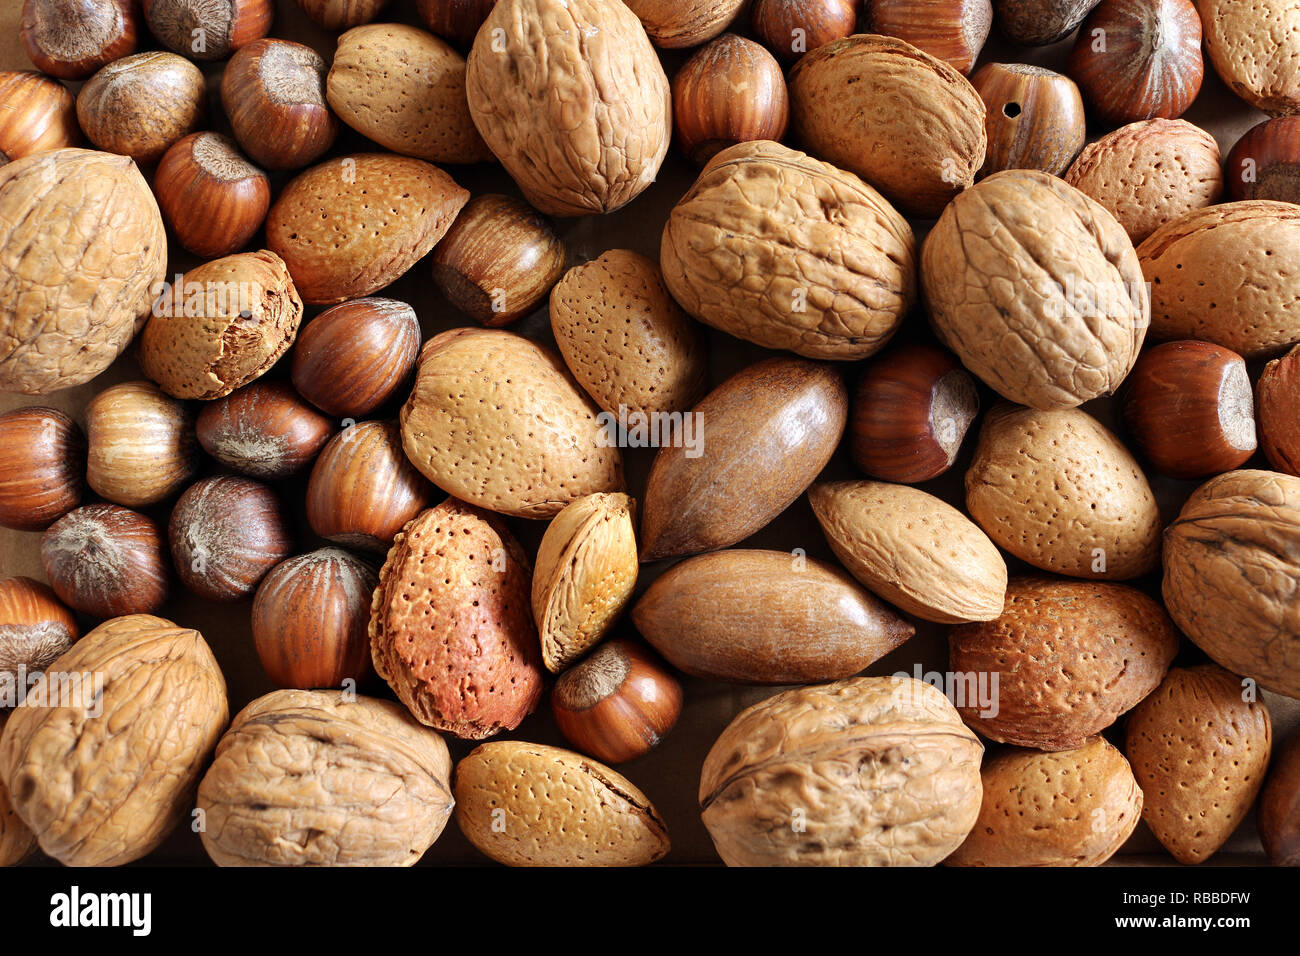 Mixed Nuts Background - Stock Image